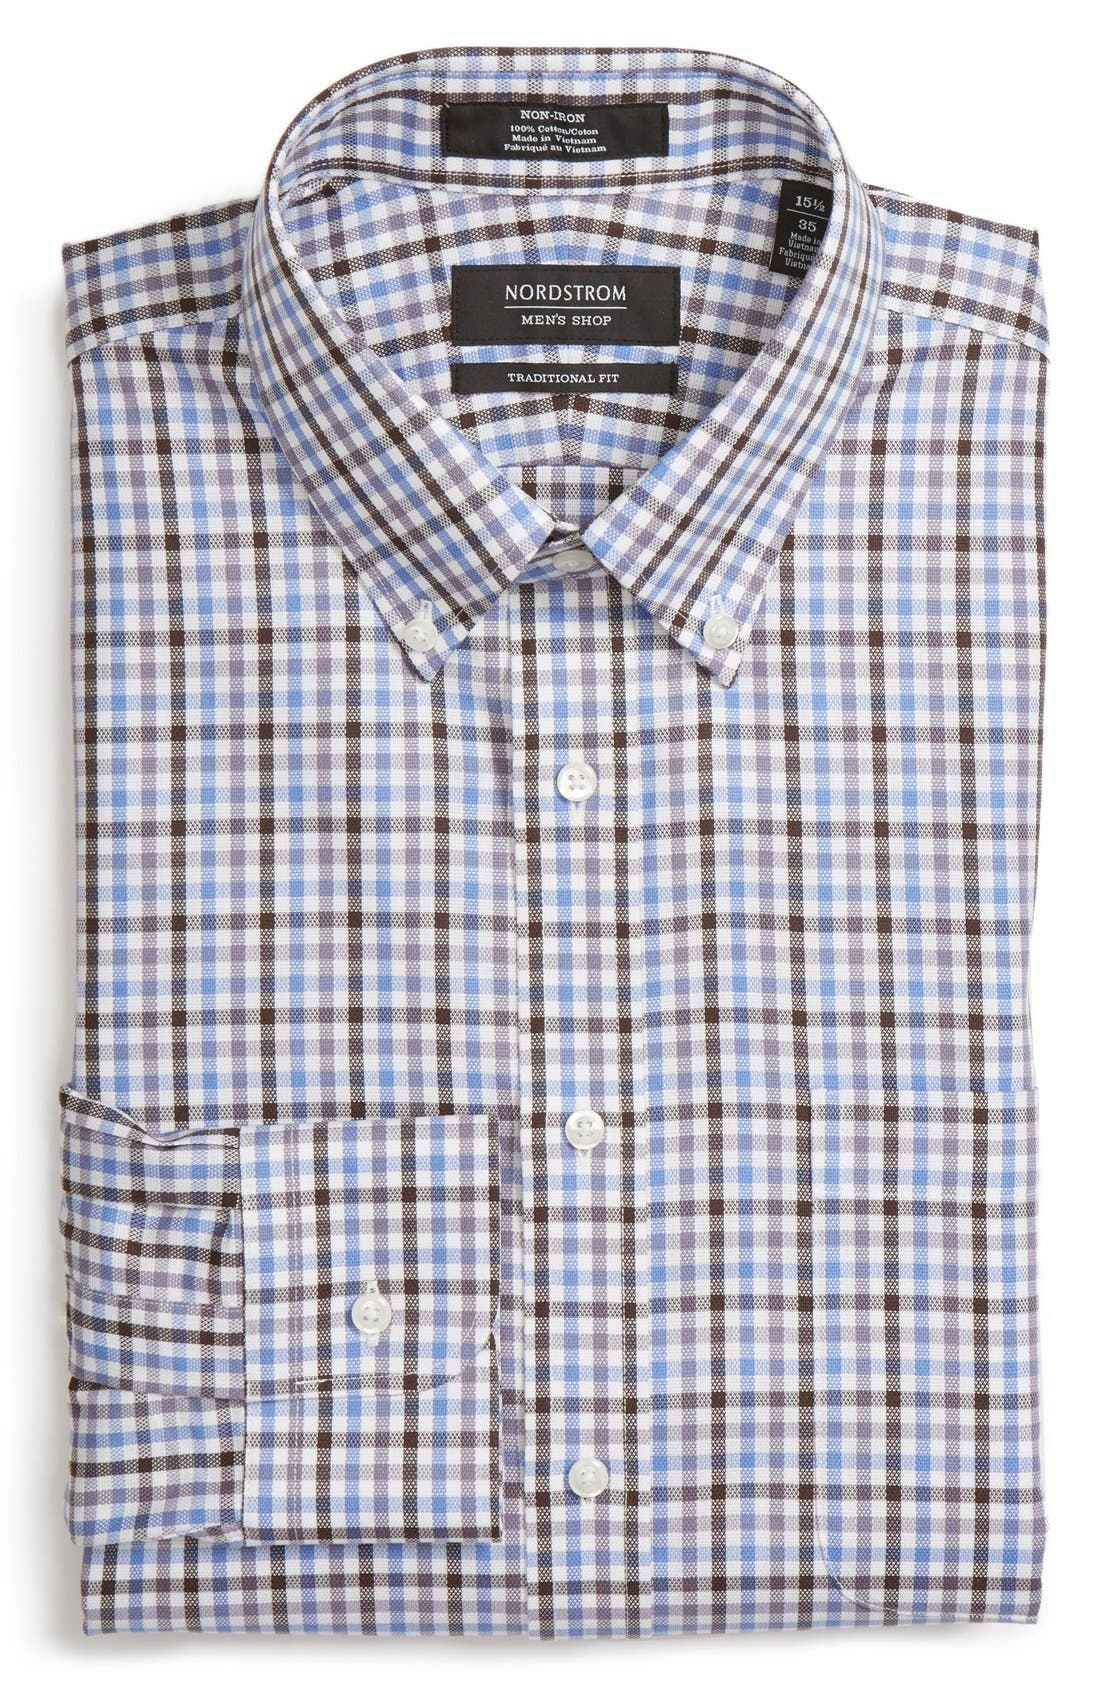 NORDSTROM MEN'S SHOP Traditional Fit Non-Iron Check Dress